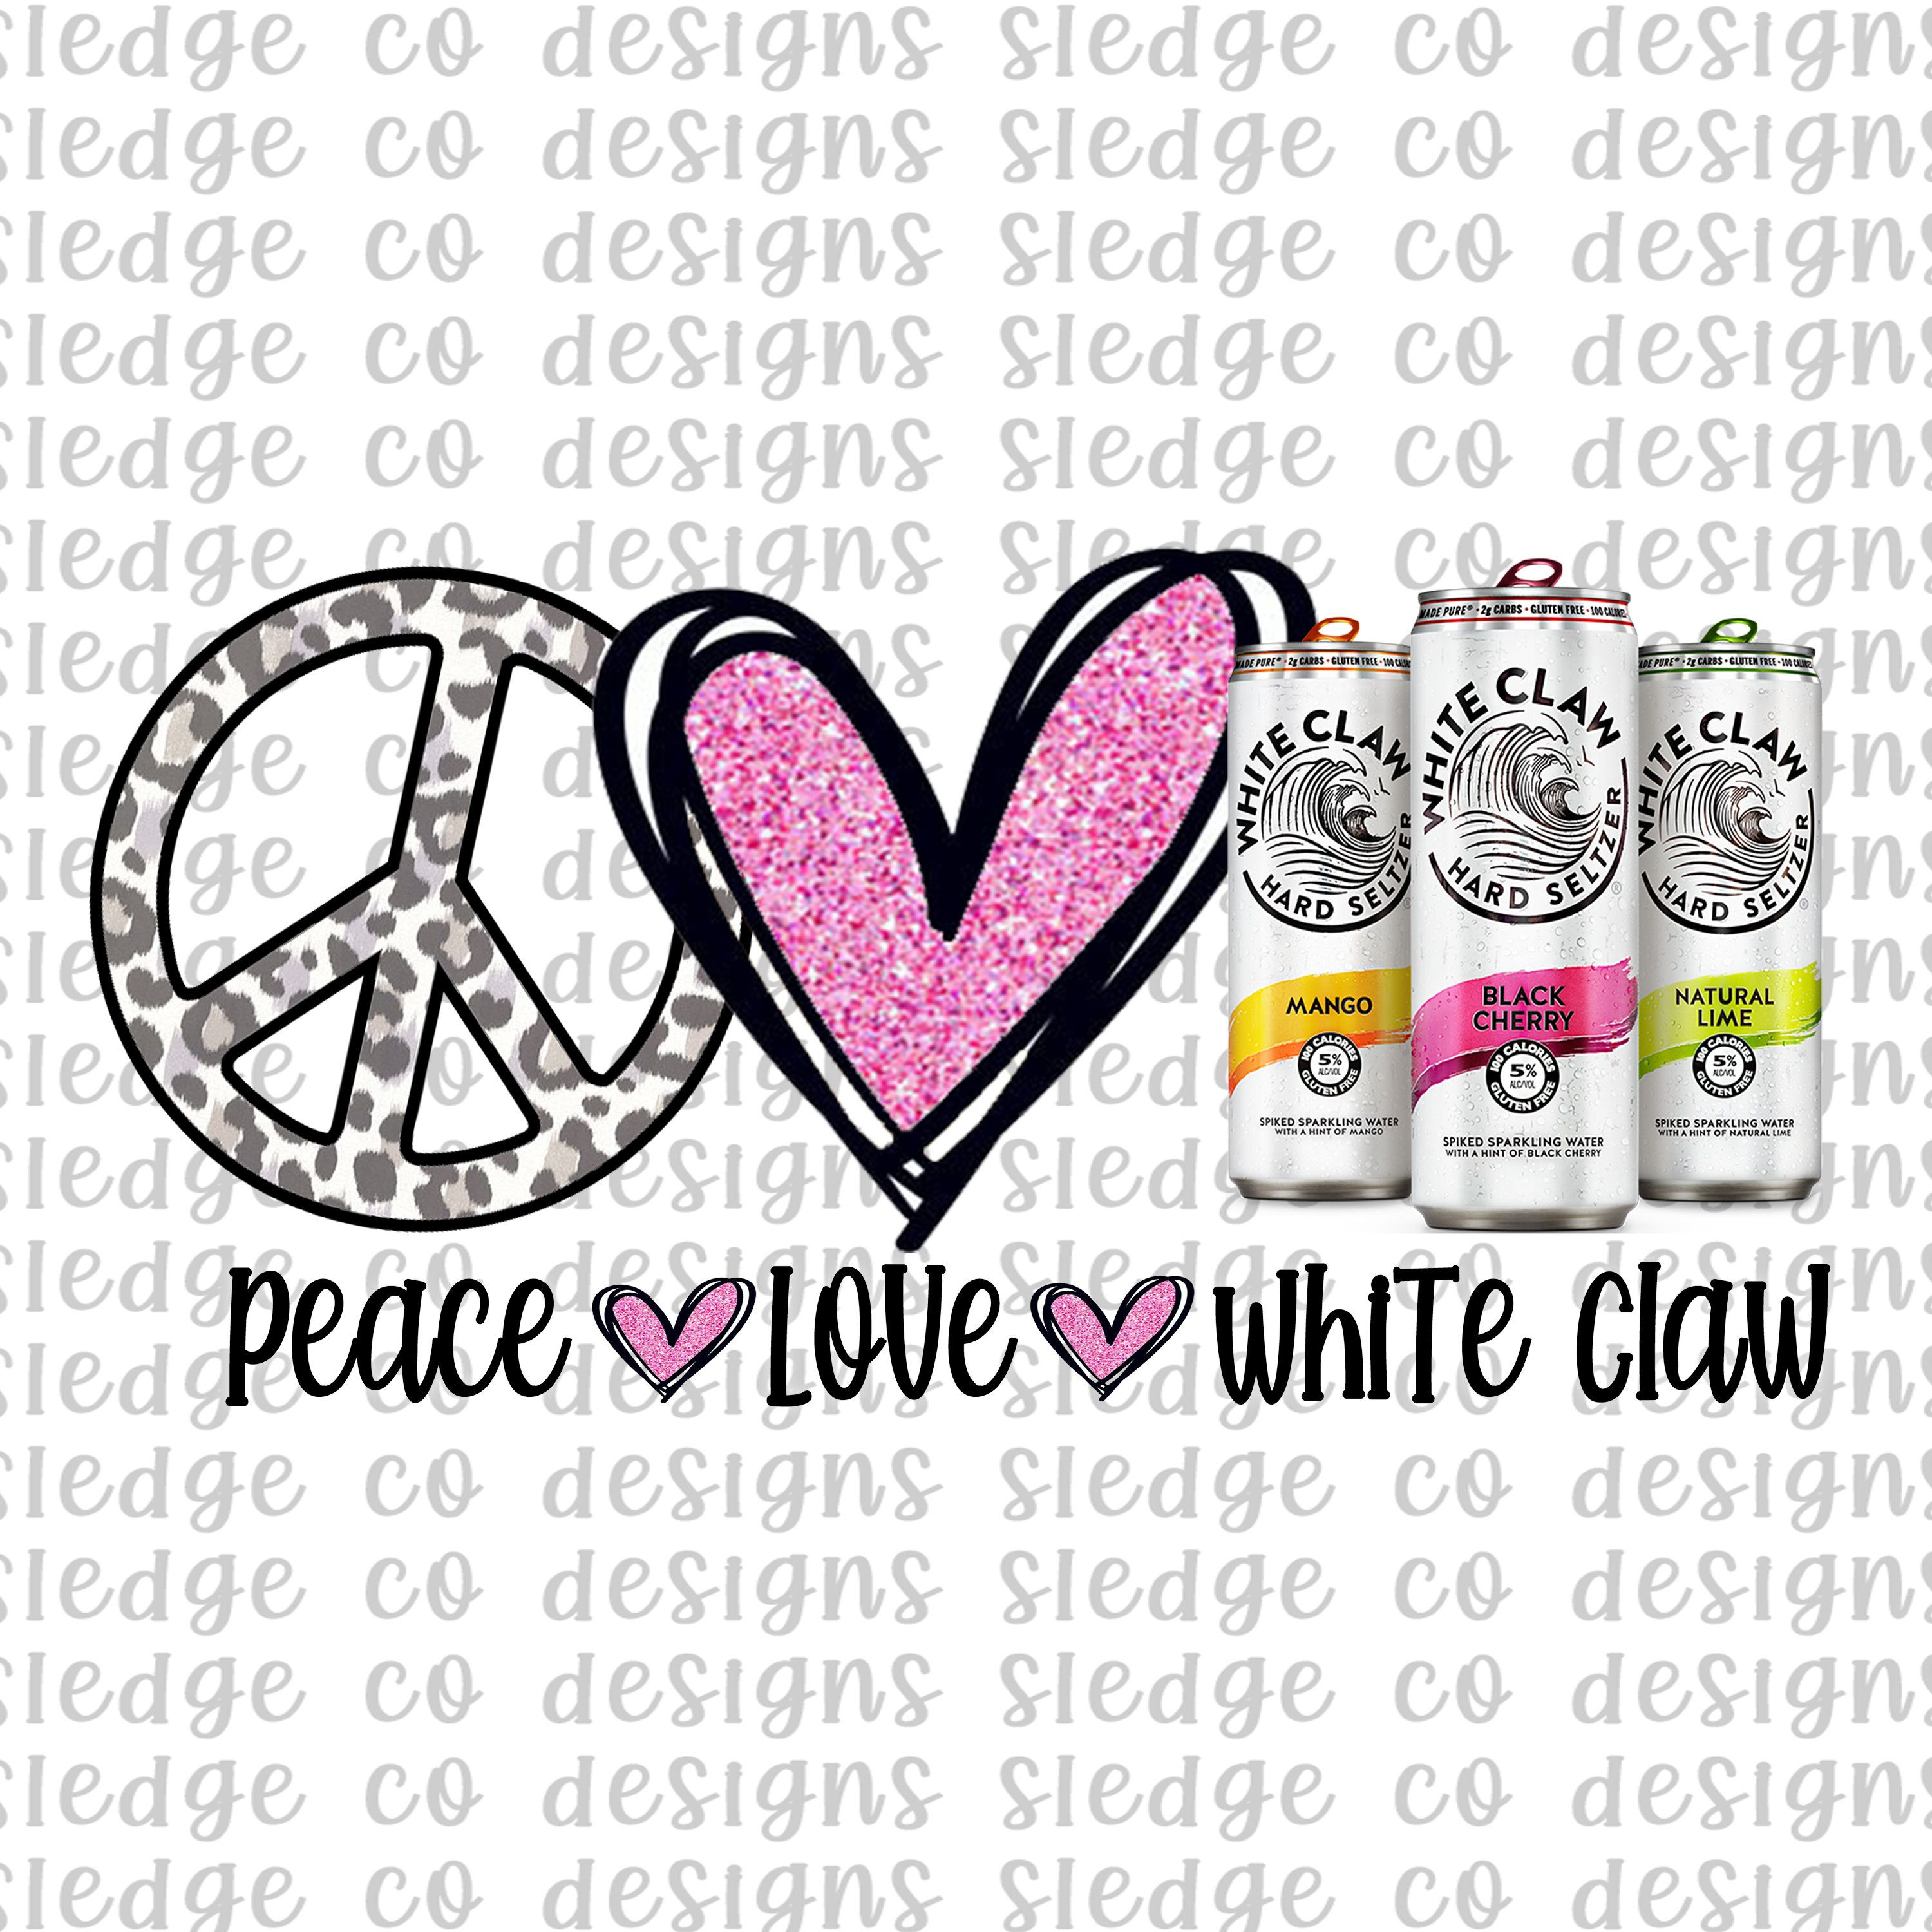 Peace Love White Claw Sublimation Png Digital Download White Claw Png White Claw Sublimation Png Peace Love Whit Peace And Love Vinyl Shirts Printable Vinyl